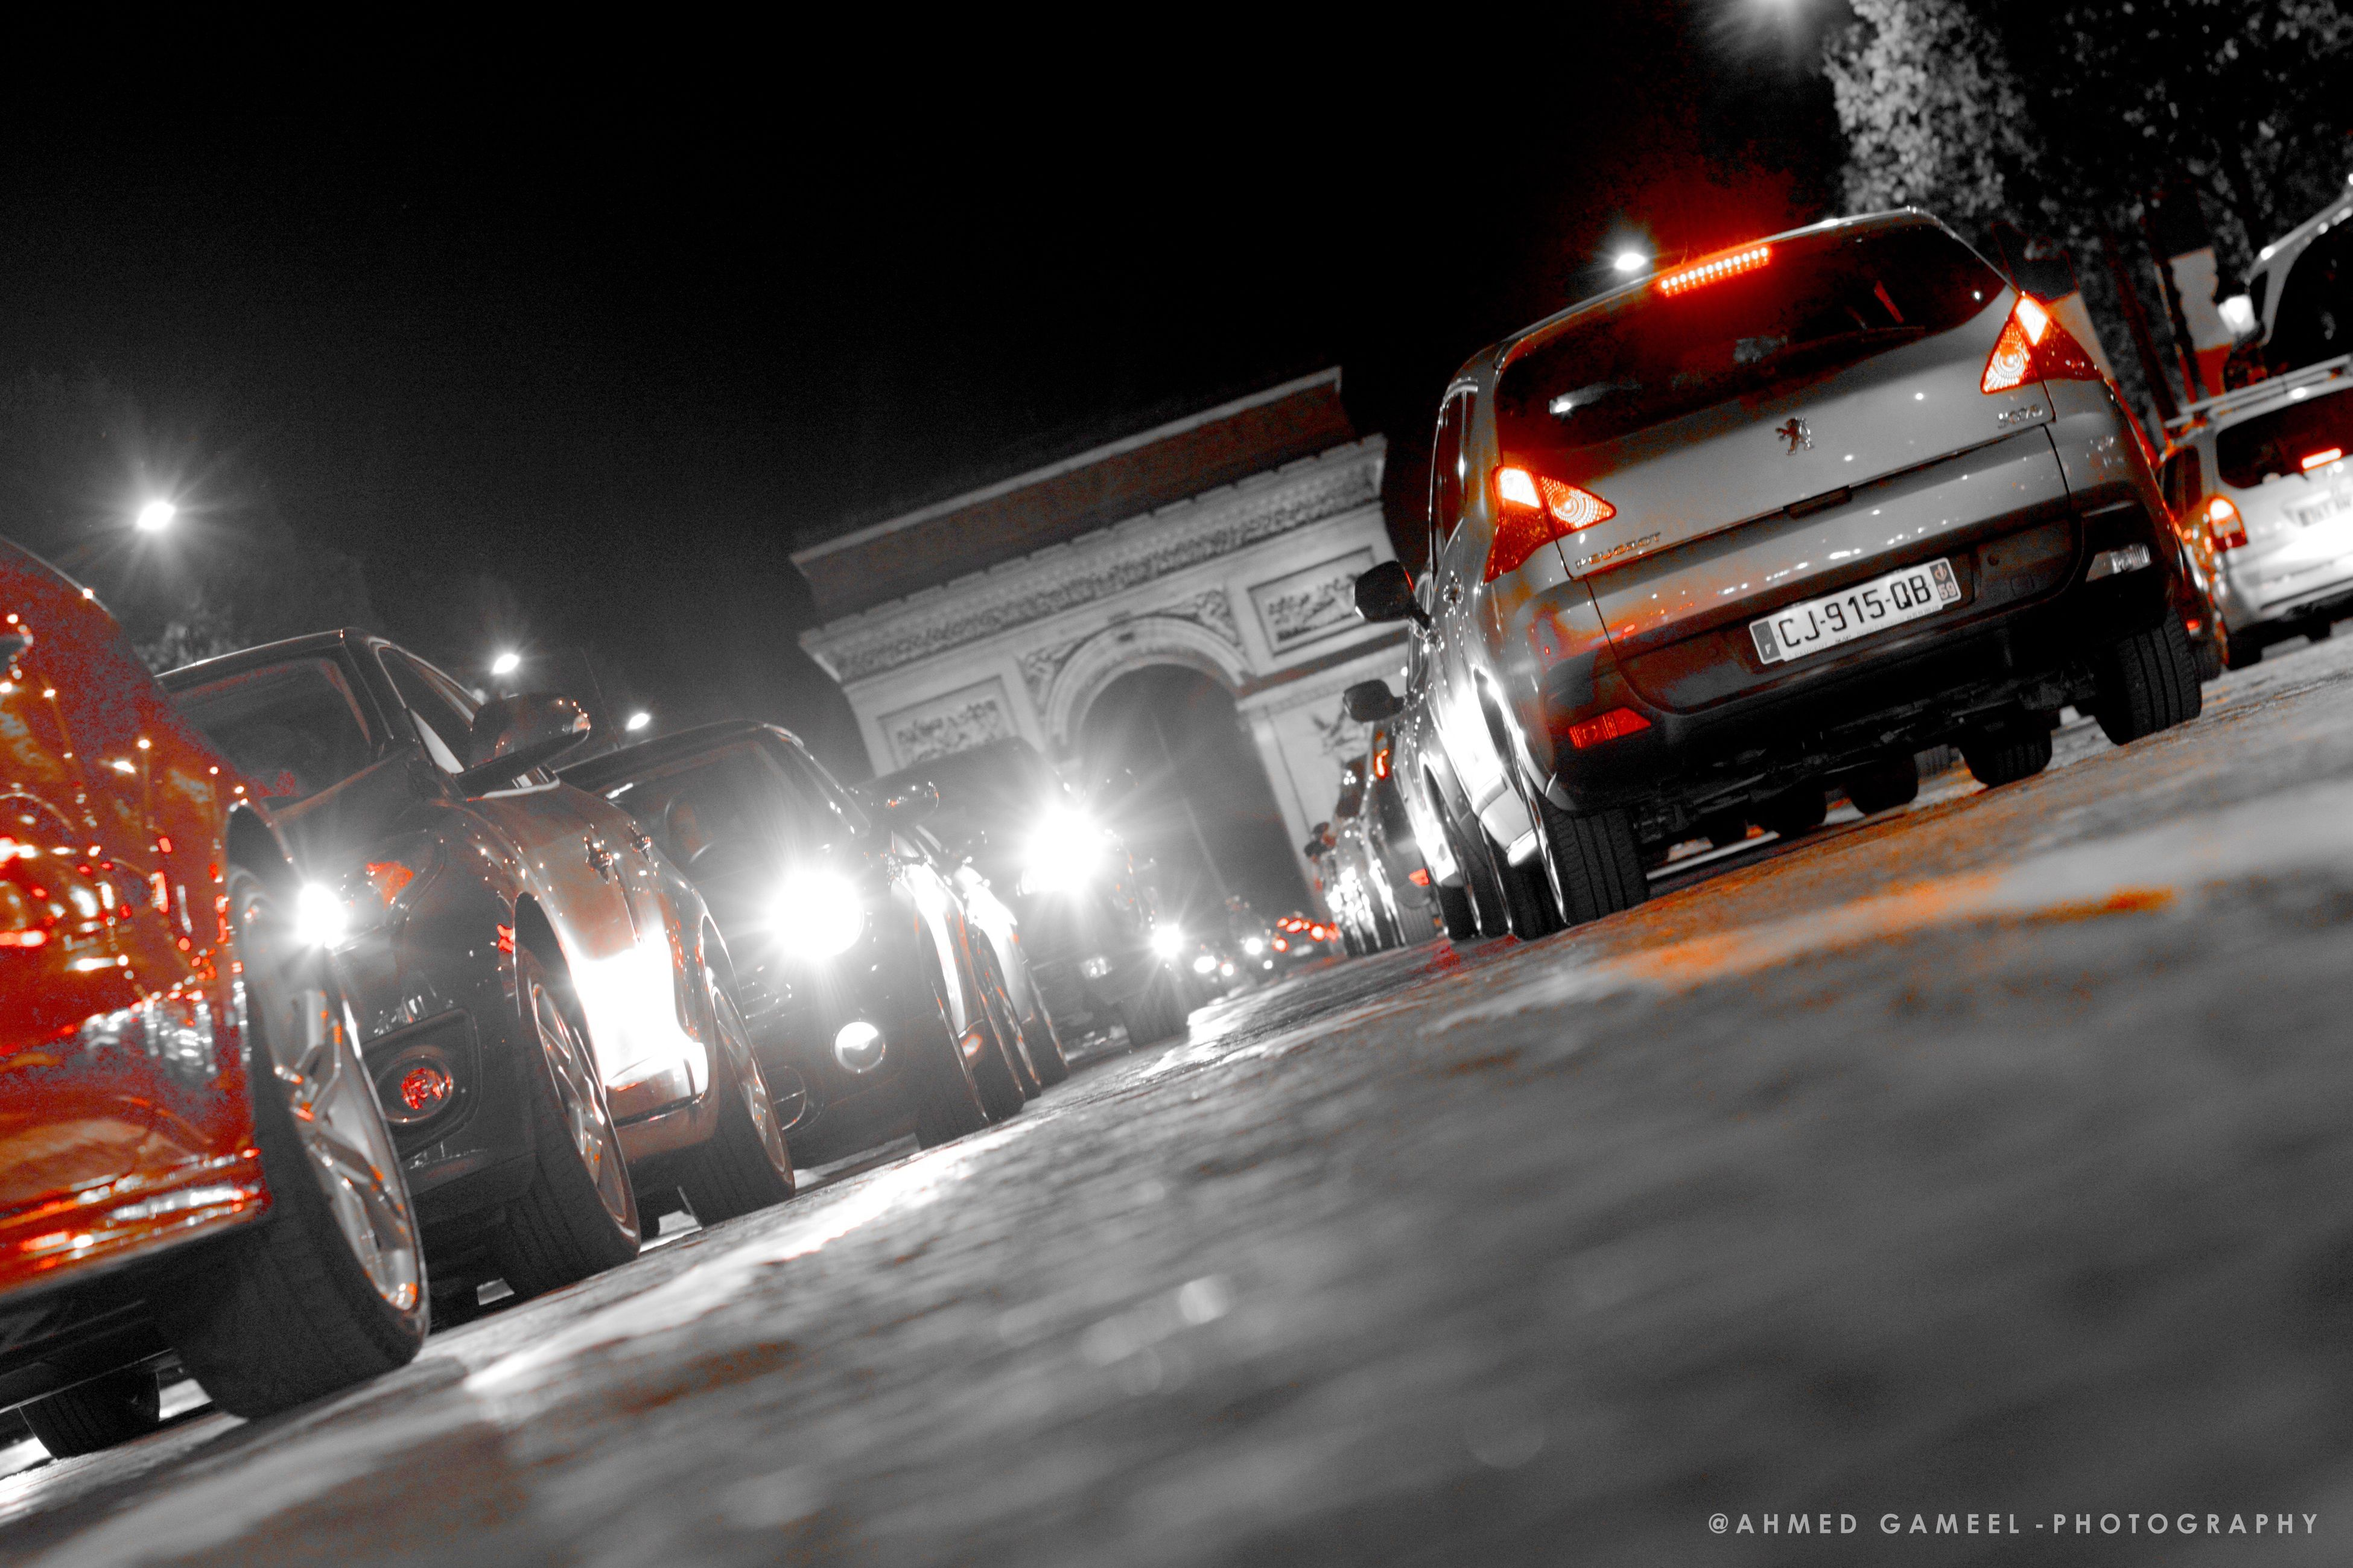 night, winter, cold temperature, city, illuminated, car, travel destinations, snow, outdoors, snowing, sky, people